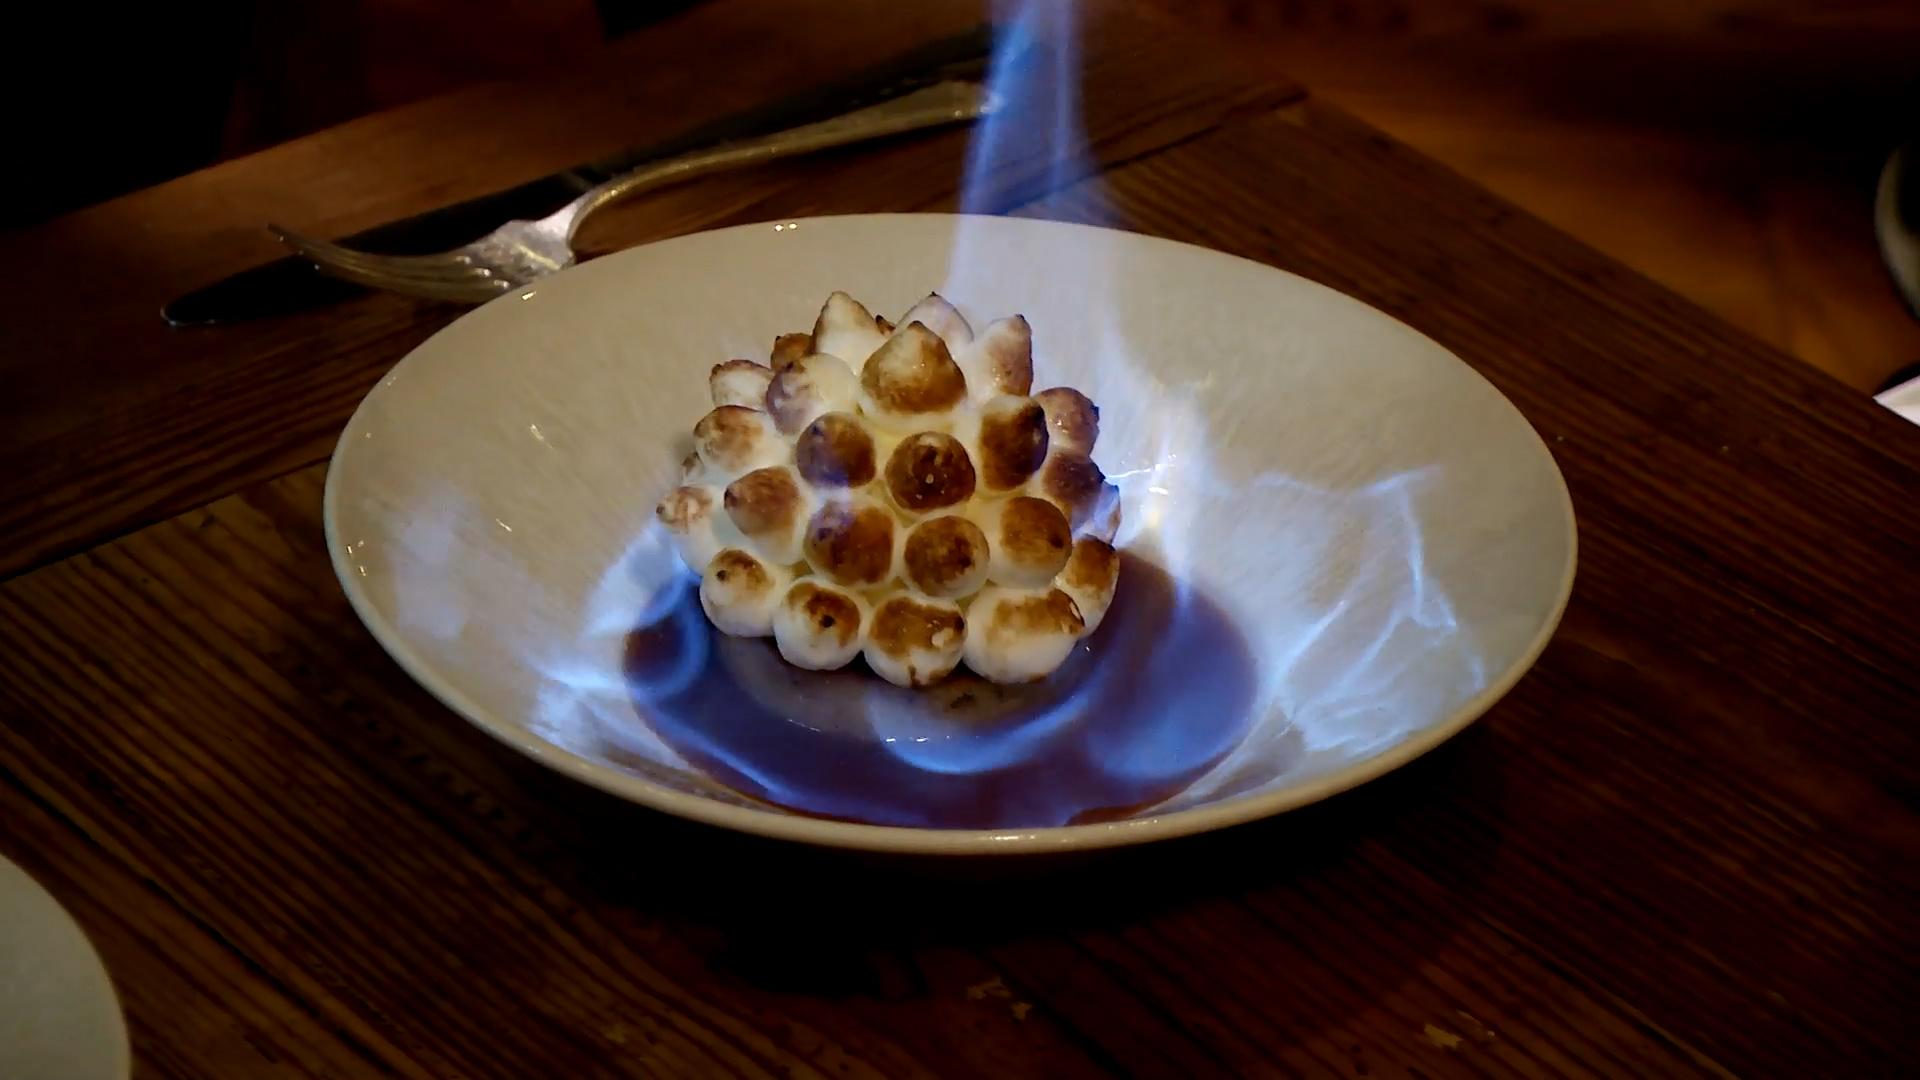 These Flaming Ice Cream Cakes Are Literally Made For Instagram